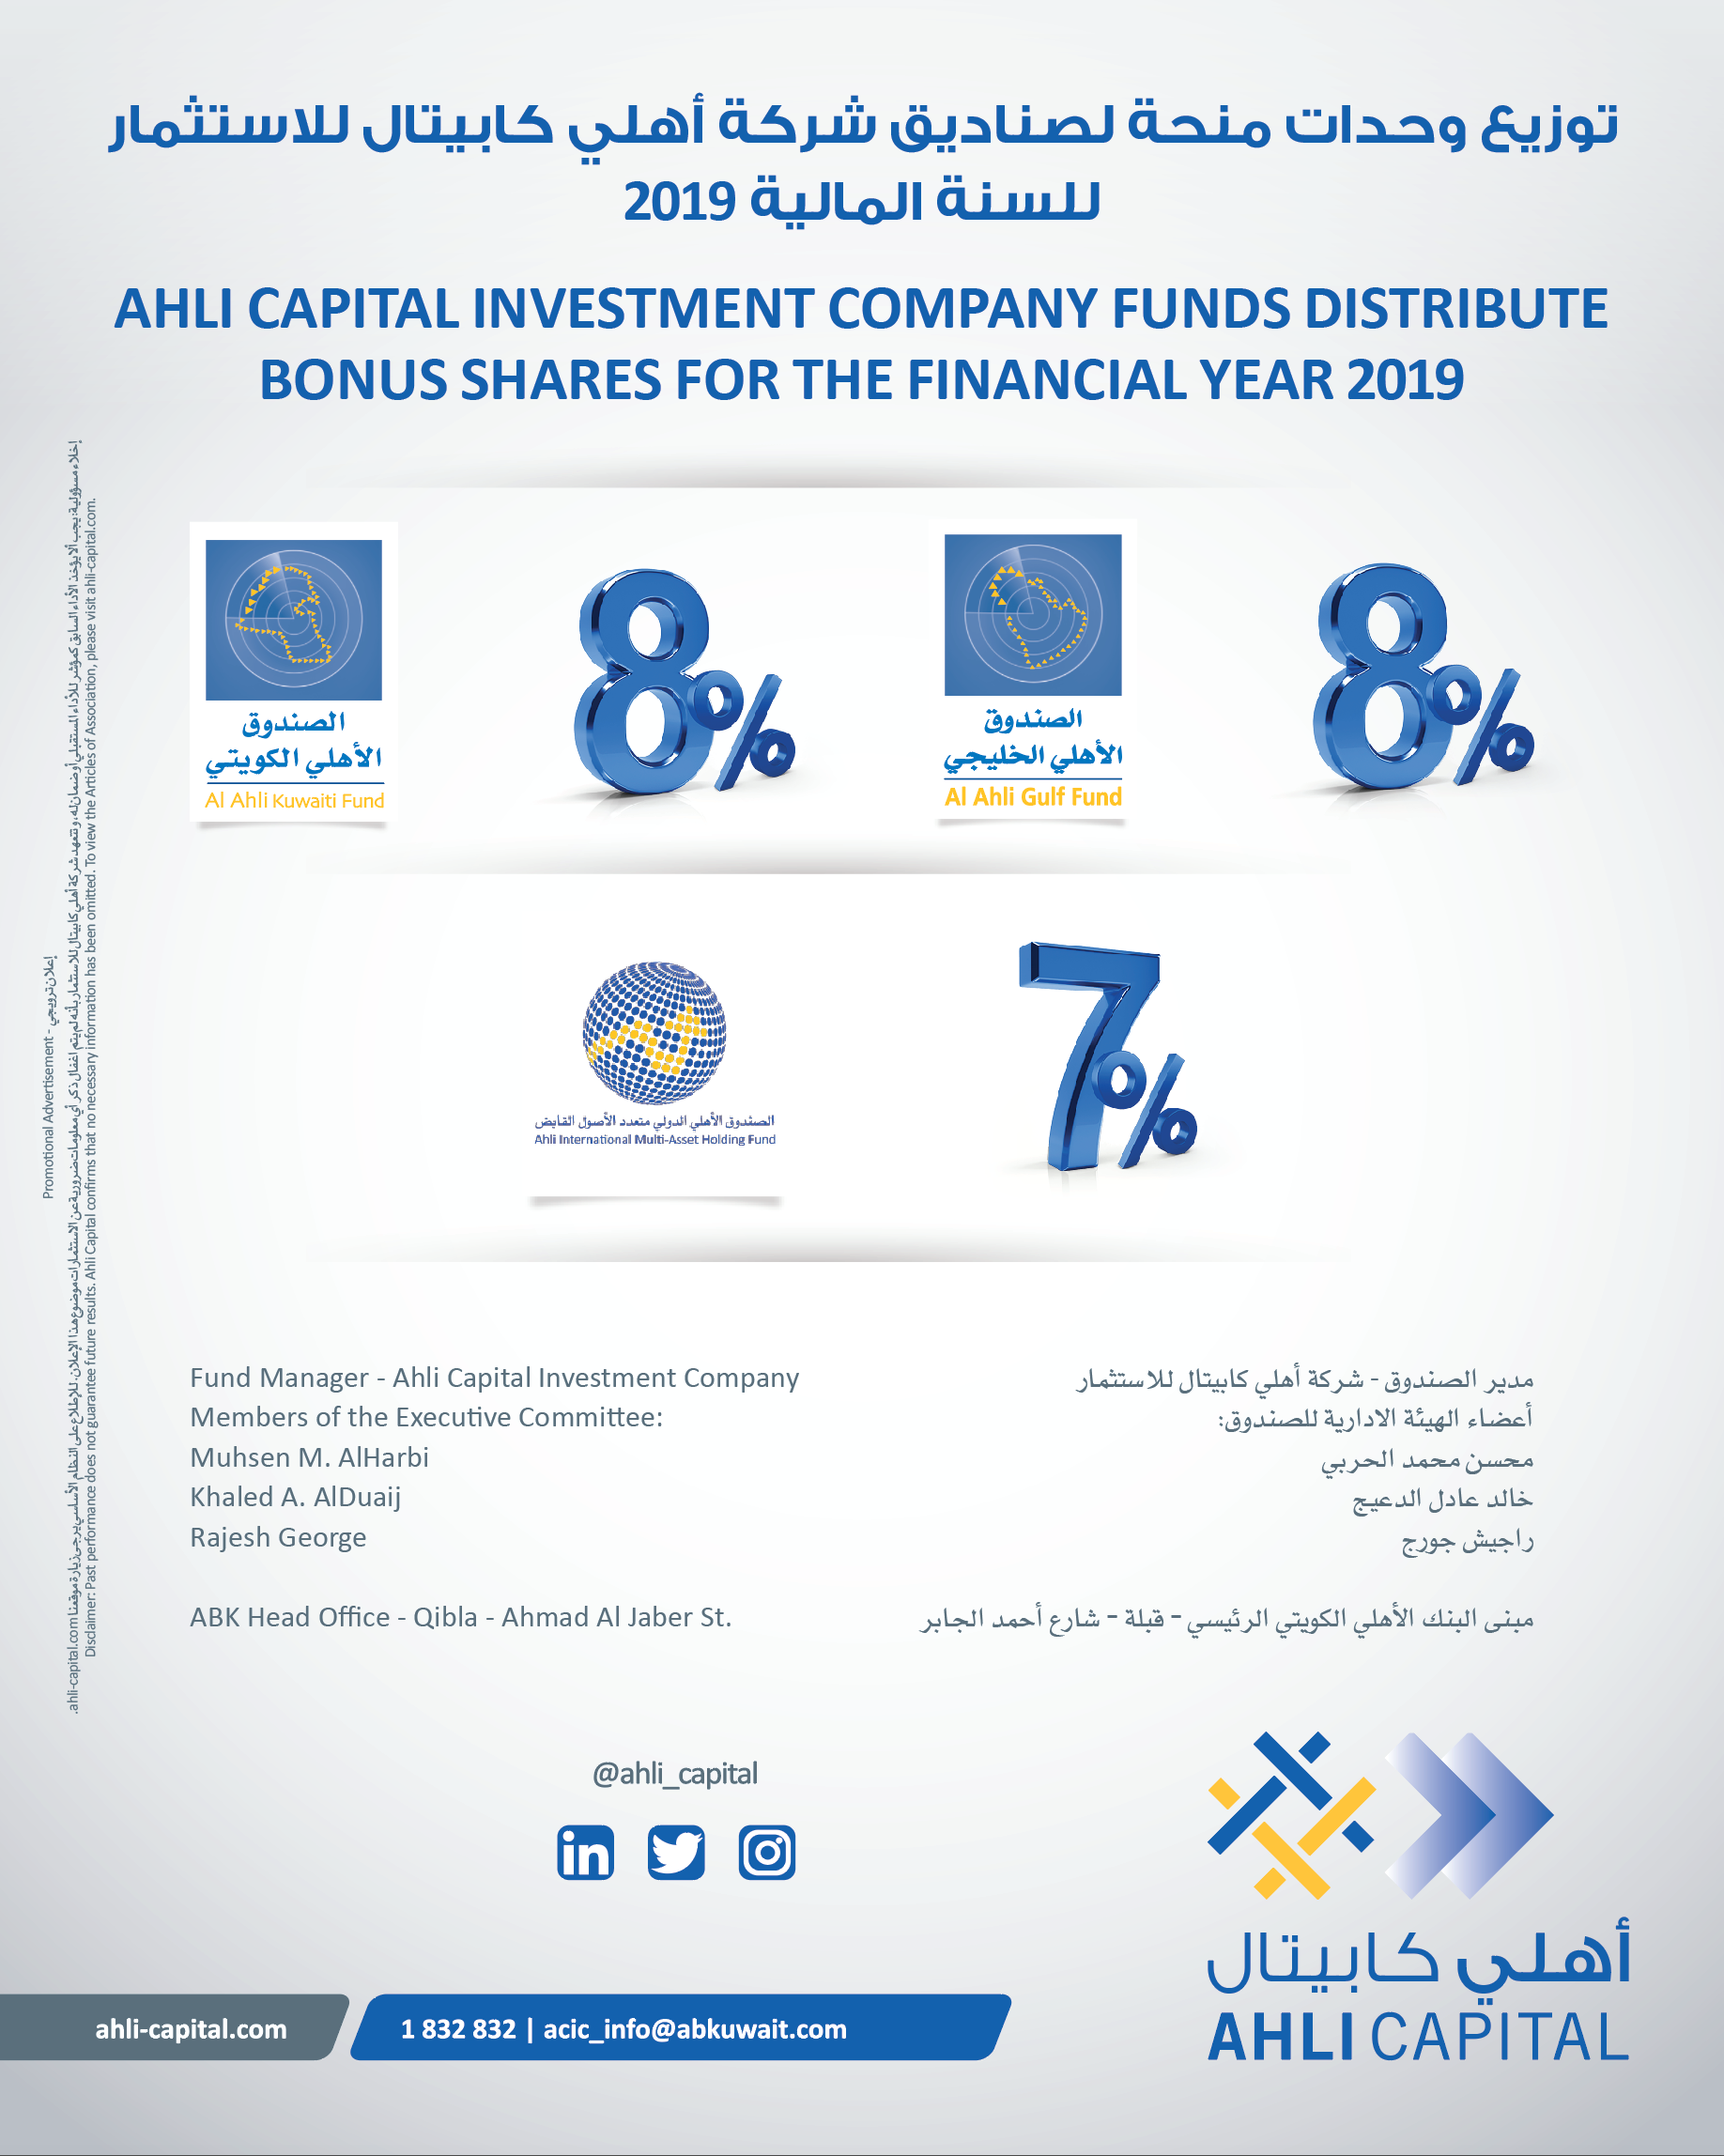 Ahli Capital Funds Distribute Bonus Shares for the Financial Year 2019